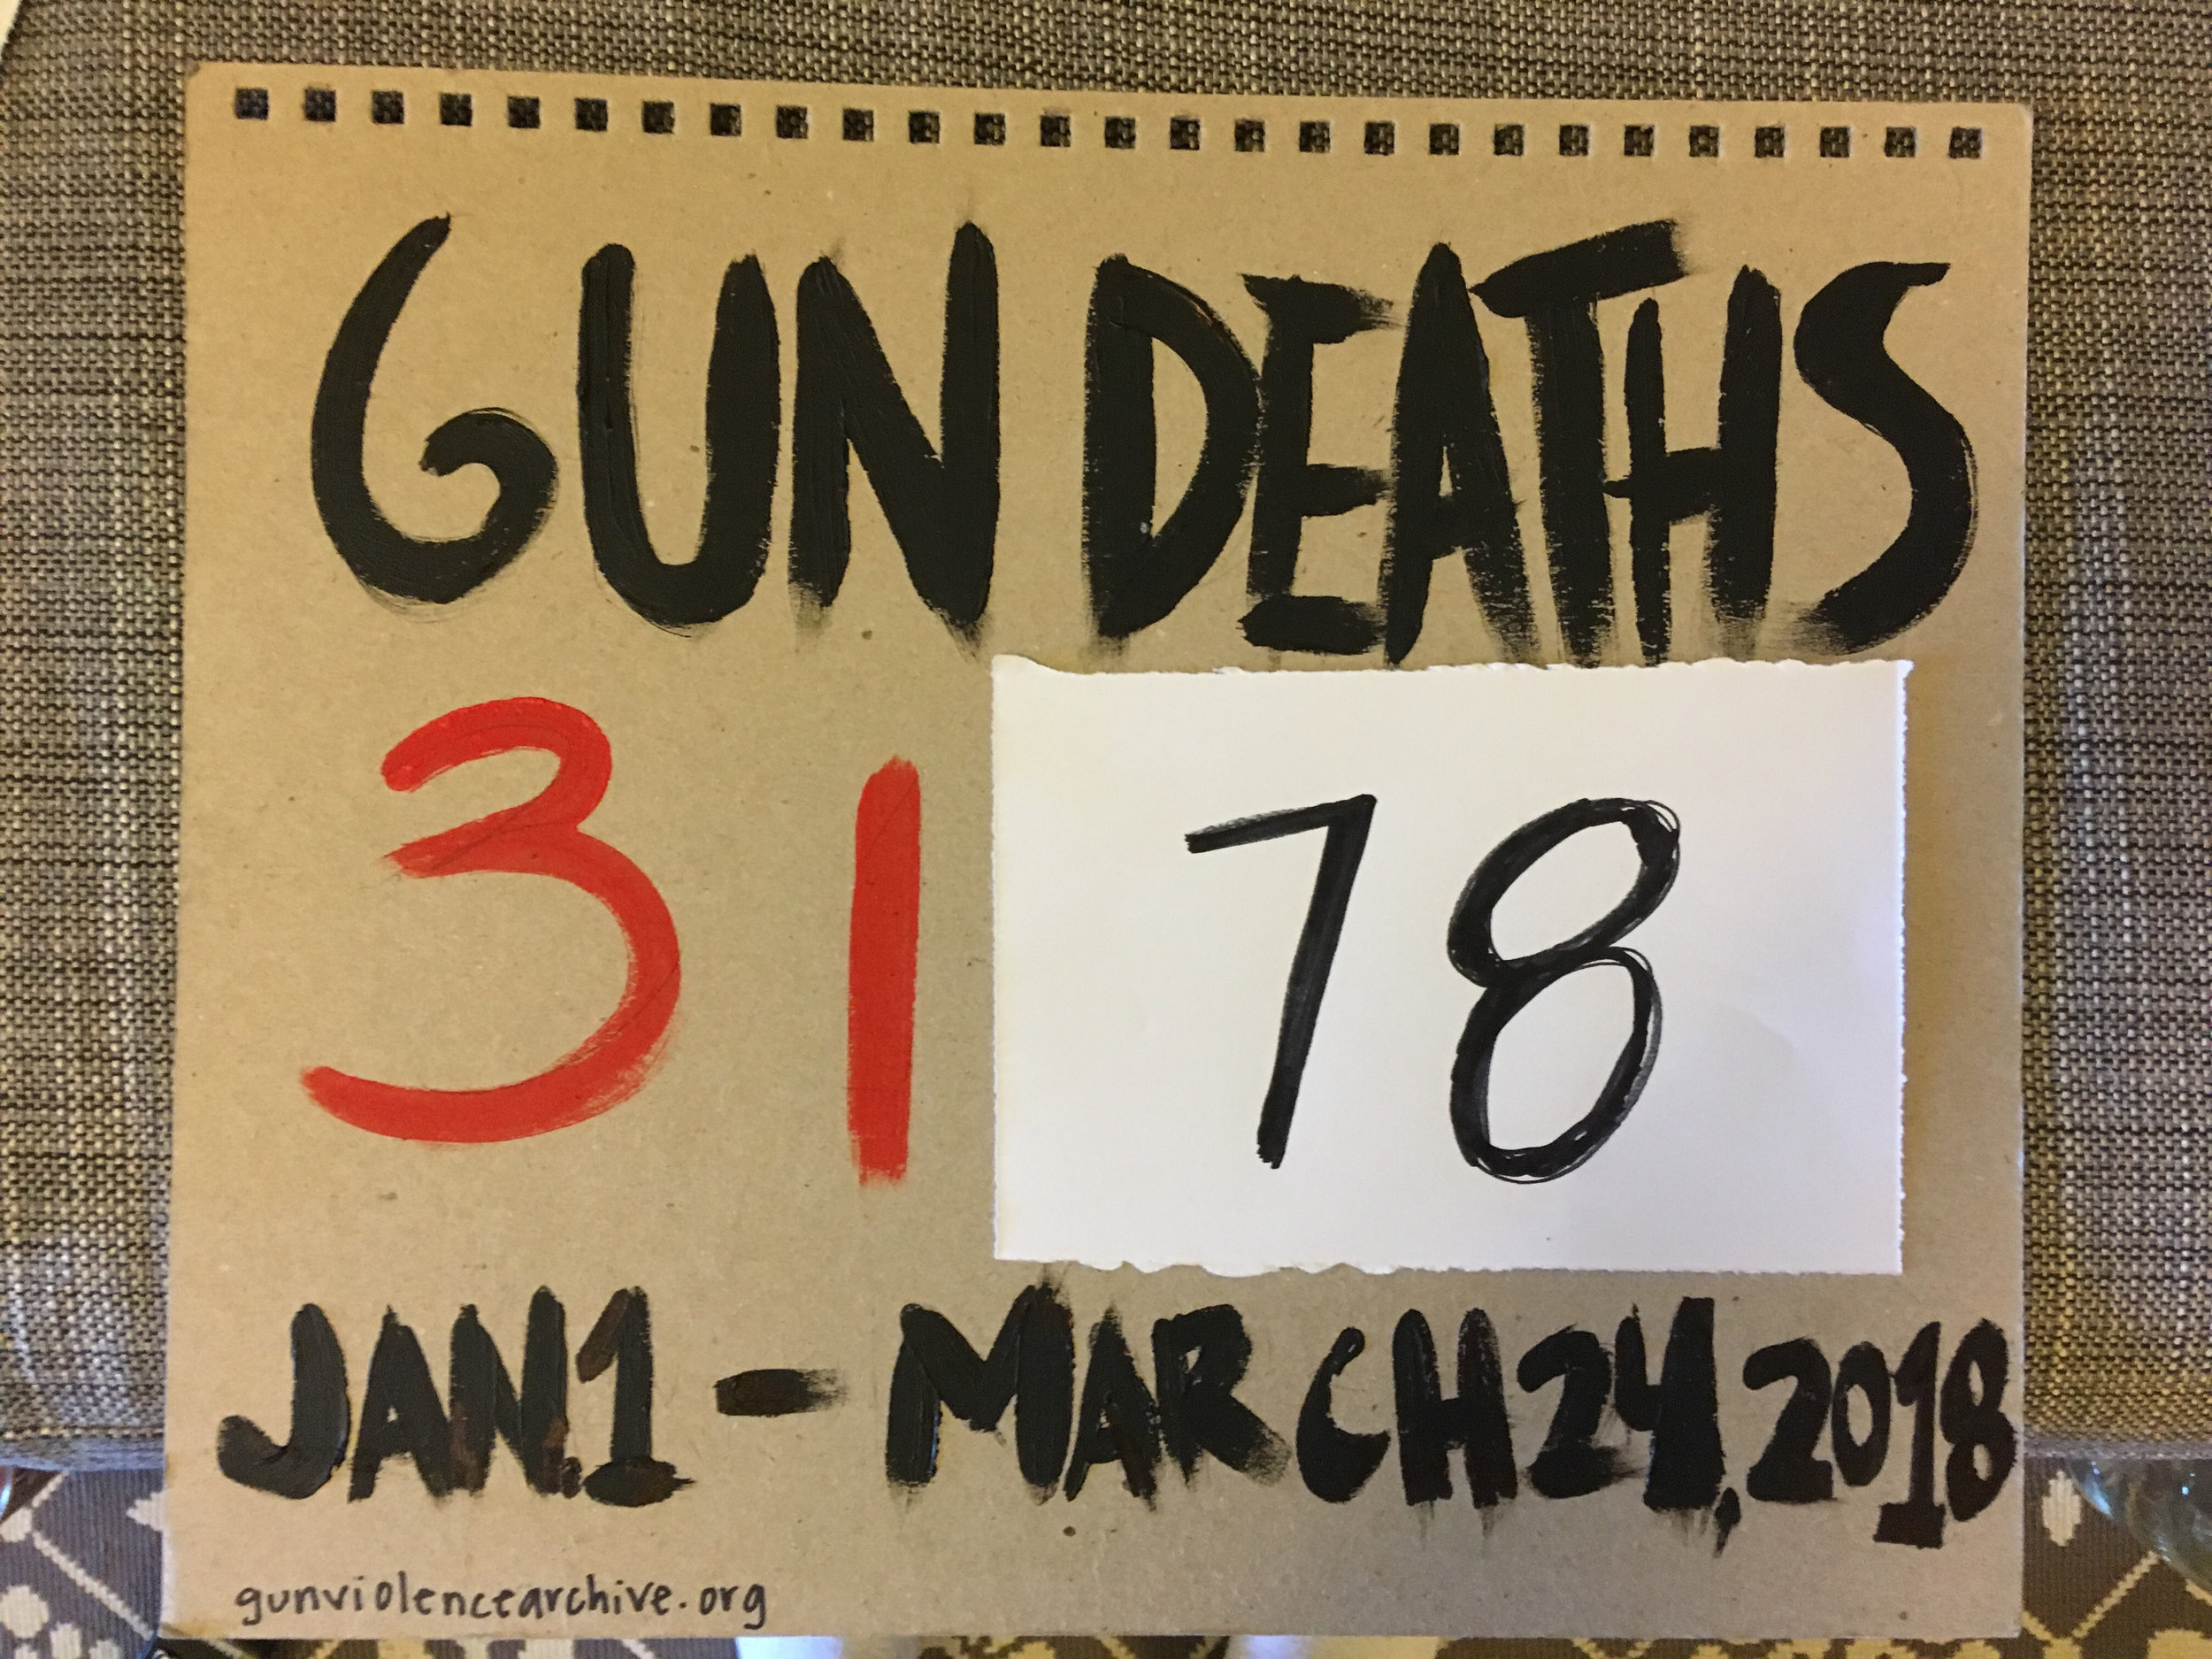 the updated number of gun deaths on March 24, one day later